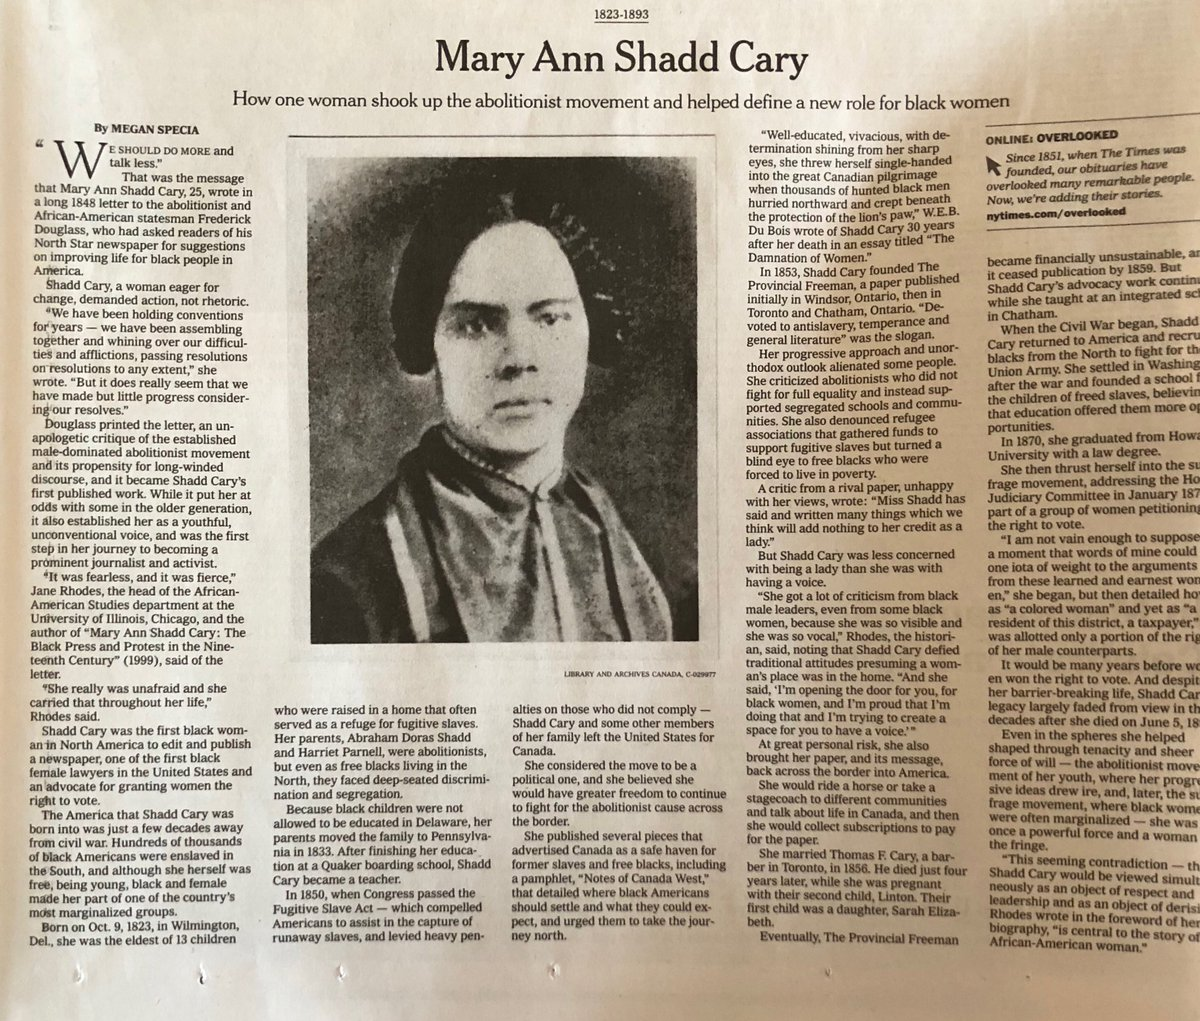 Feministlawprfs On Twitter Nice Piece In Today S Nytimes On Howardlawschool Grad Mary Ann Shadd Cary Class Of 1870 Lawyer Publisher Educator Abolitionist Https T Co Yno8whaglh